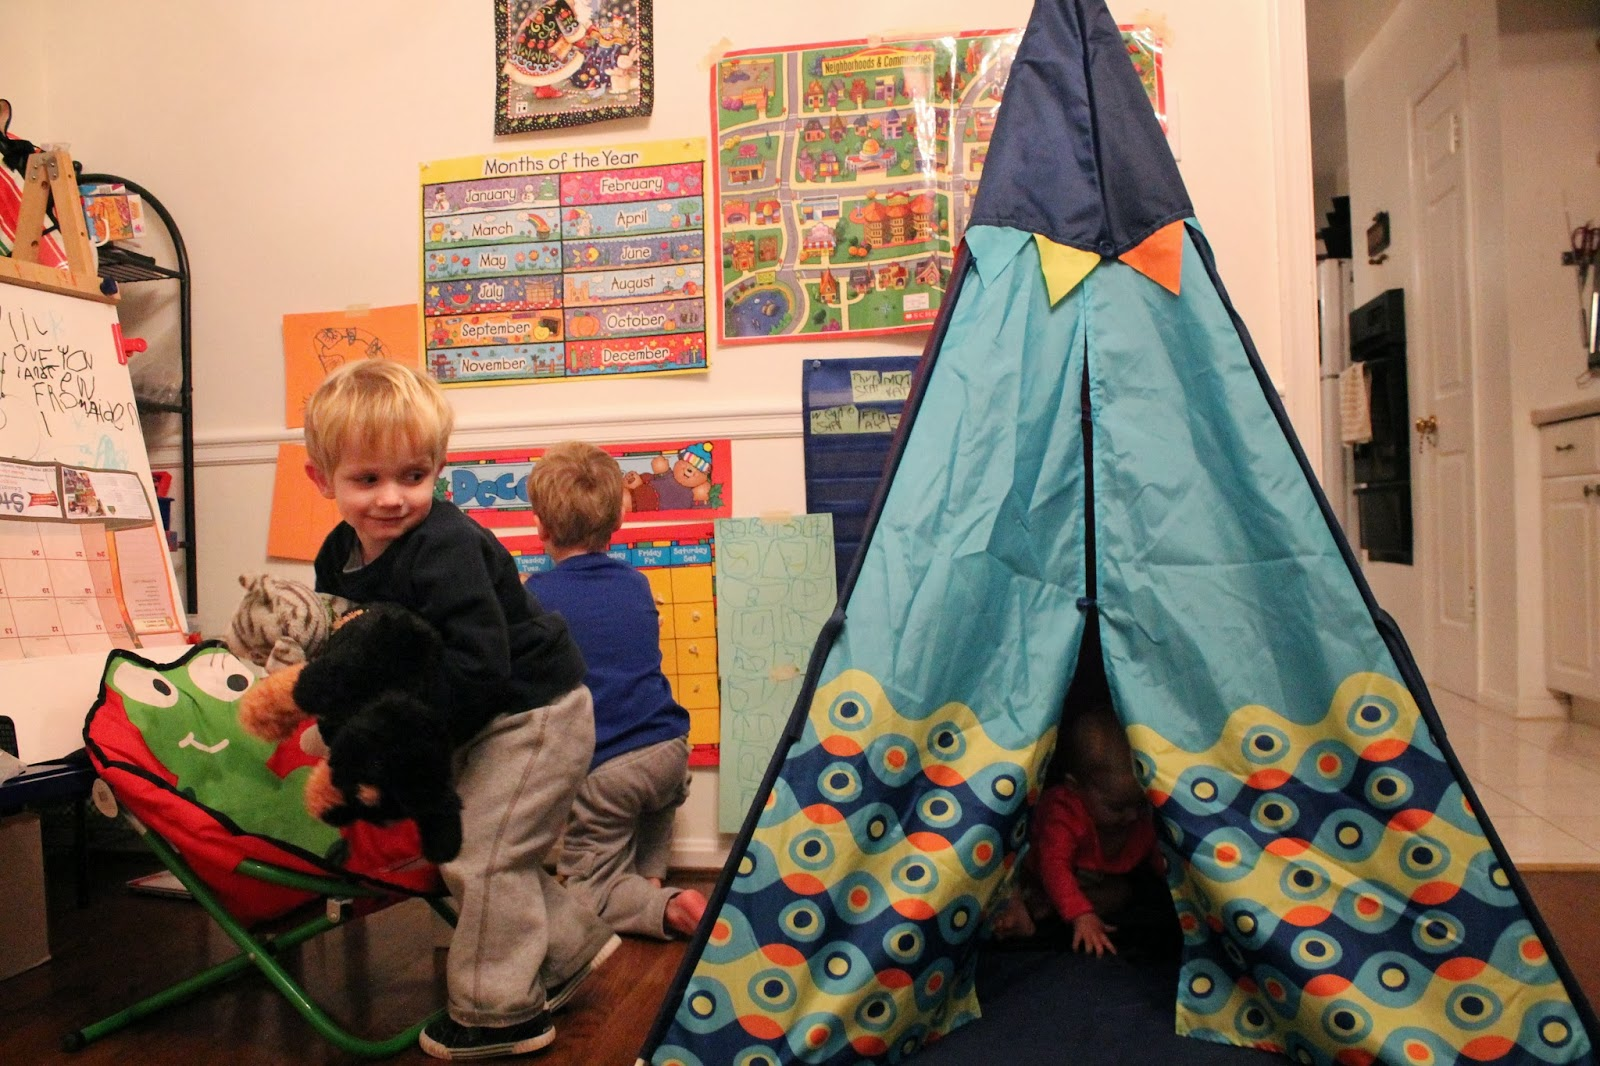 The 12 Days of Toys Day 11 B Toys TeePee  sc 1 st  The Chirping Moms & The 12 Days of Toys: Day 11 B Toys TeePee - The Chirping Moms